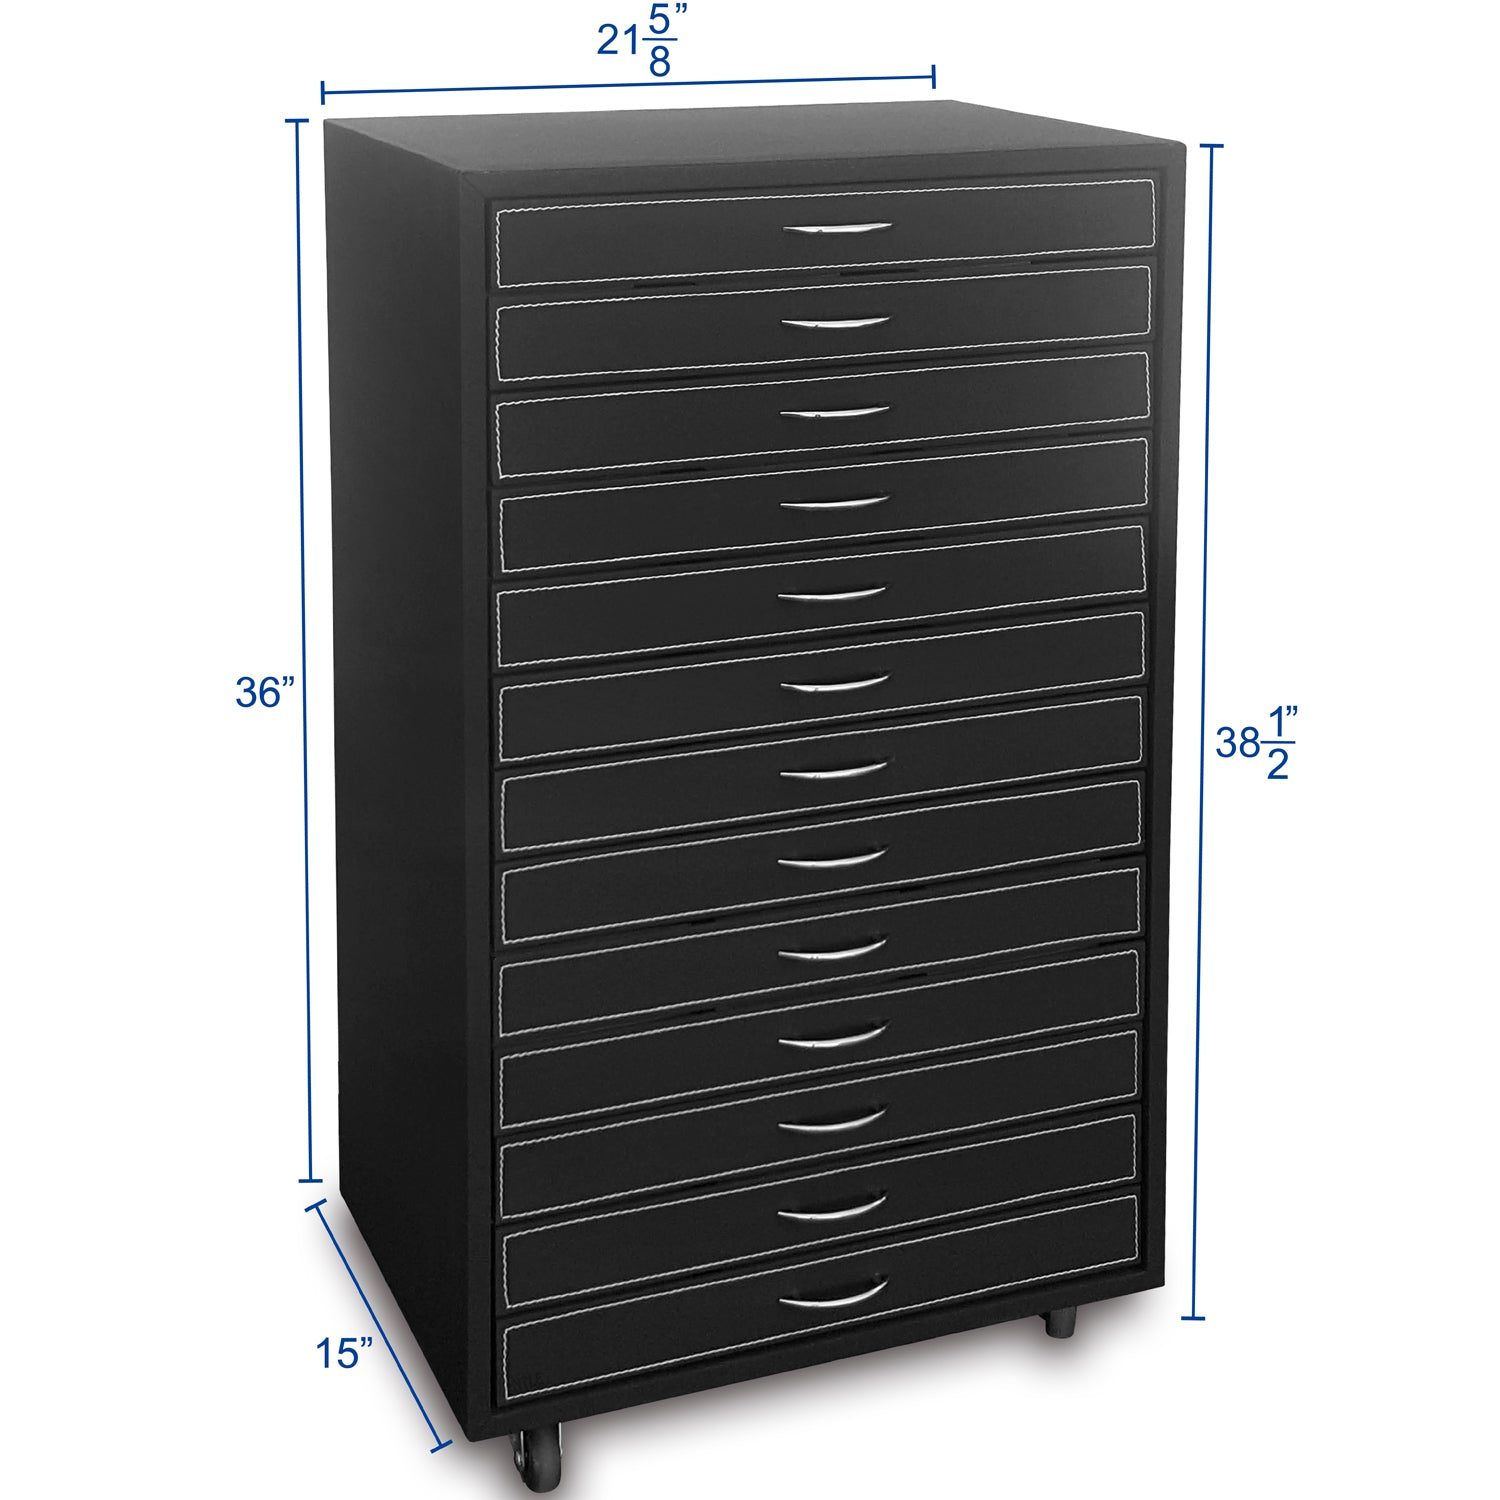 #D207-13 Black Fabric Eyewear Display And Storage Cabinet With Swivel Wheels (Include 13 Trays, Each Tray Hold 18 Frames. Total For 234 Frames)